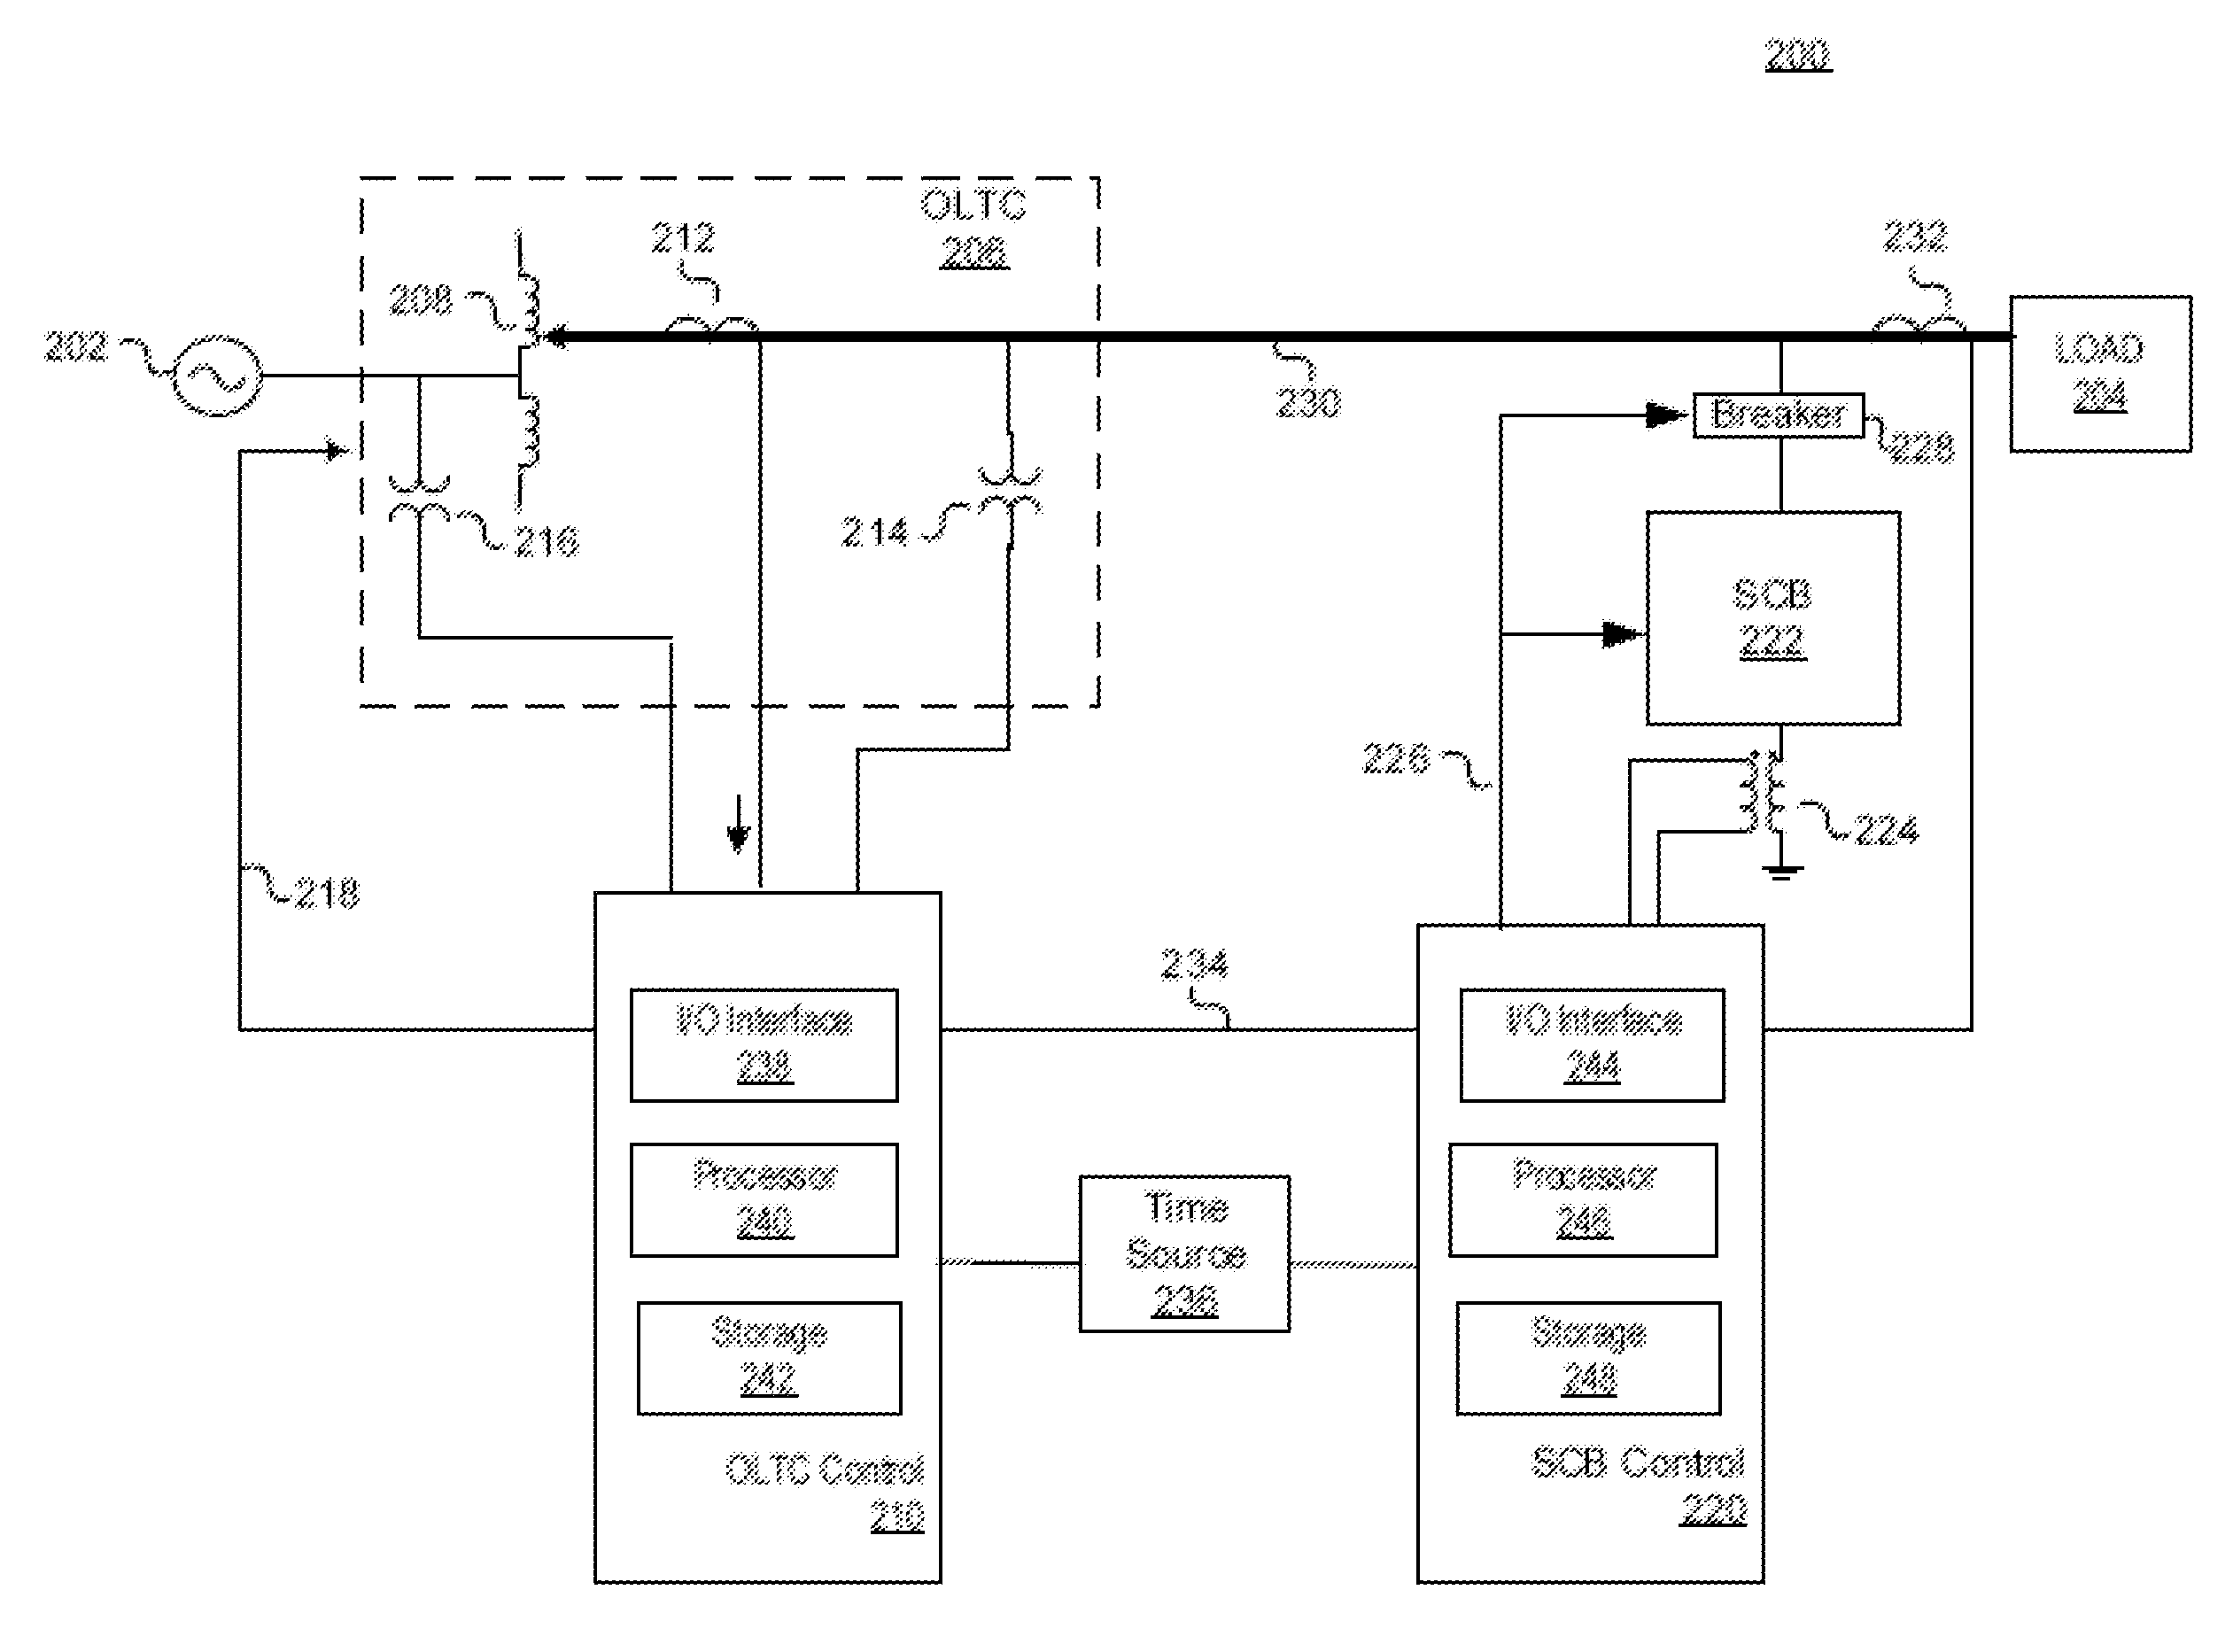 tapcon 240 wiring diagram hyster s50xm forklift connection somurich